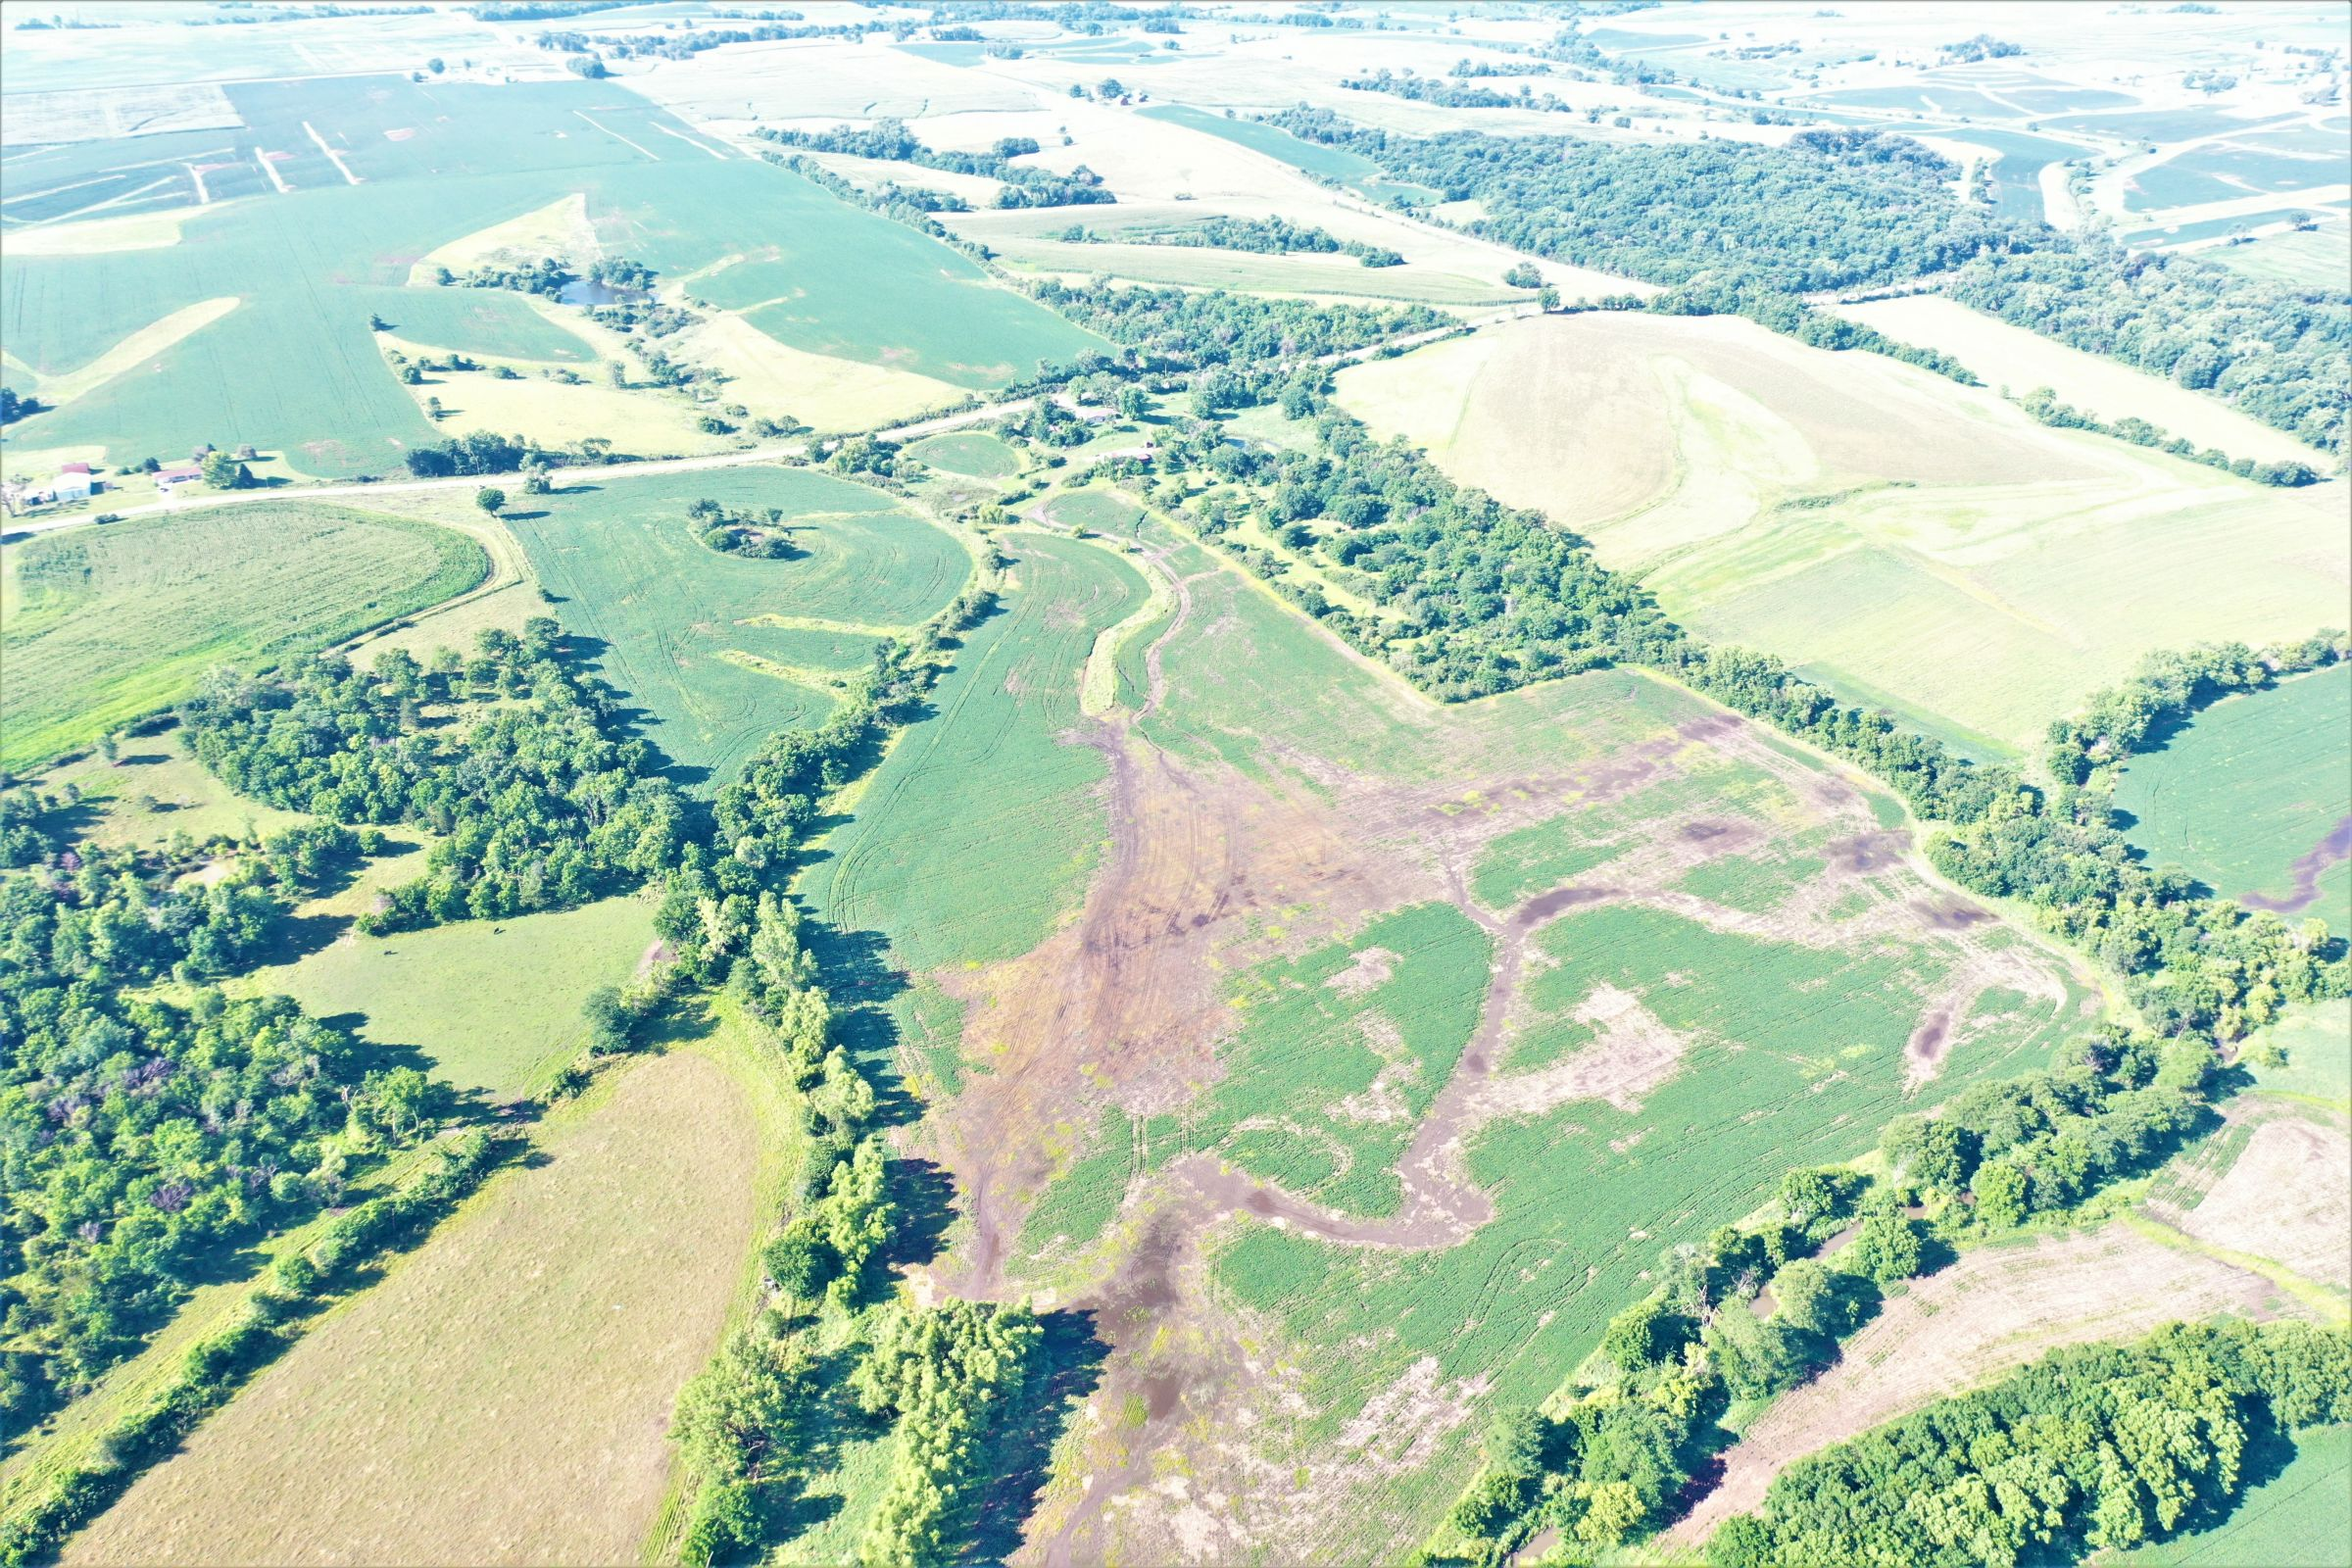 land-marion-county-iowa-163-acres-listing-number-15077-5-2020-07-17-171946.jpg